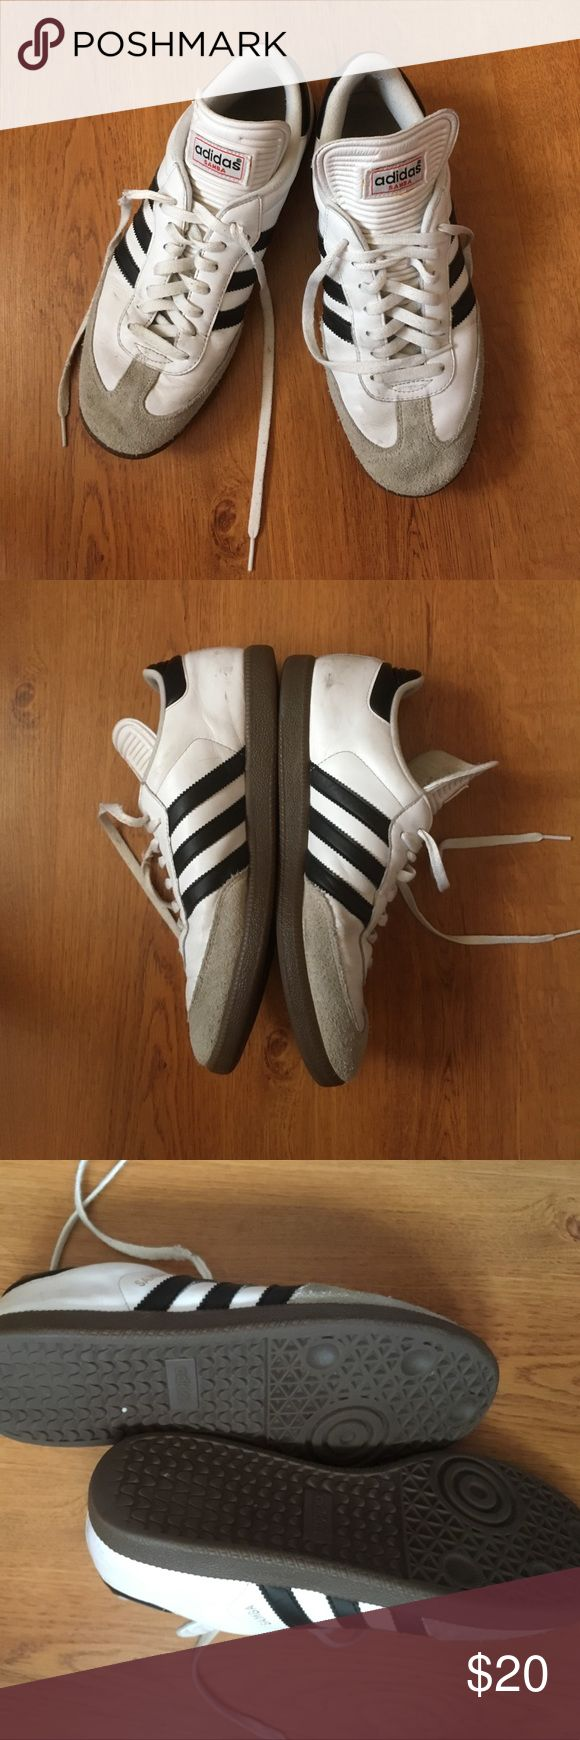 Mens Adidas Samba tennis shoe This classic style adidas samba tennis shoes are perfect for casual days! Can be worn for athletics or for leisure. Minor signs of wear and tear, the shoe laces might want to be replaced. adidas Shoes Sneakers